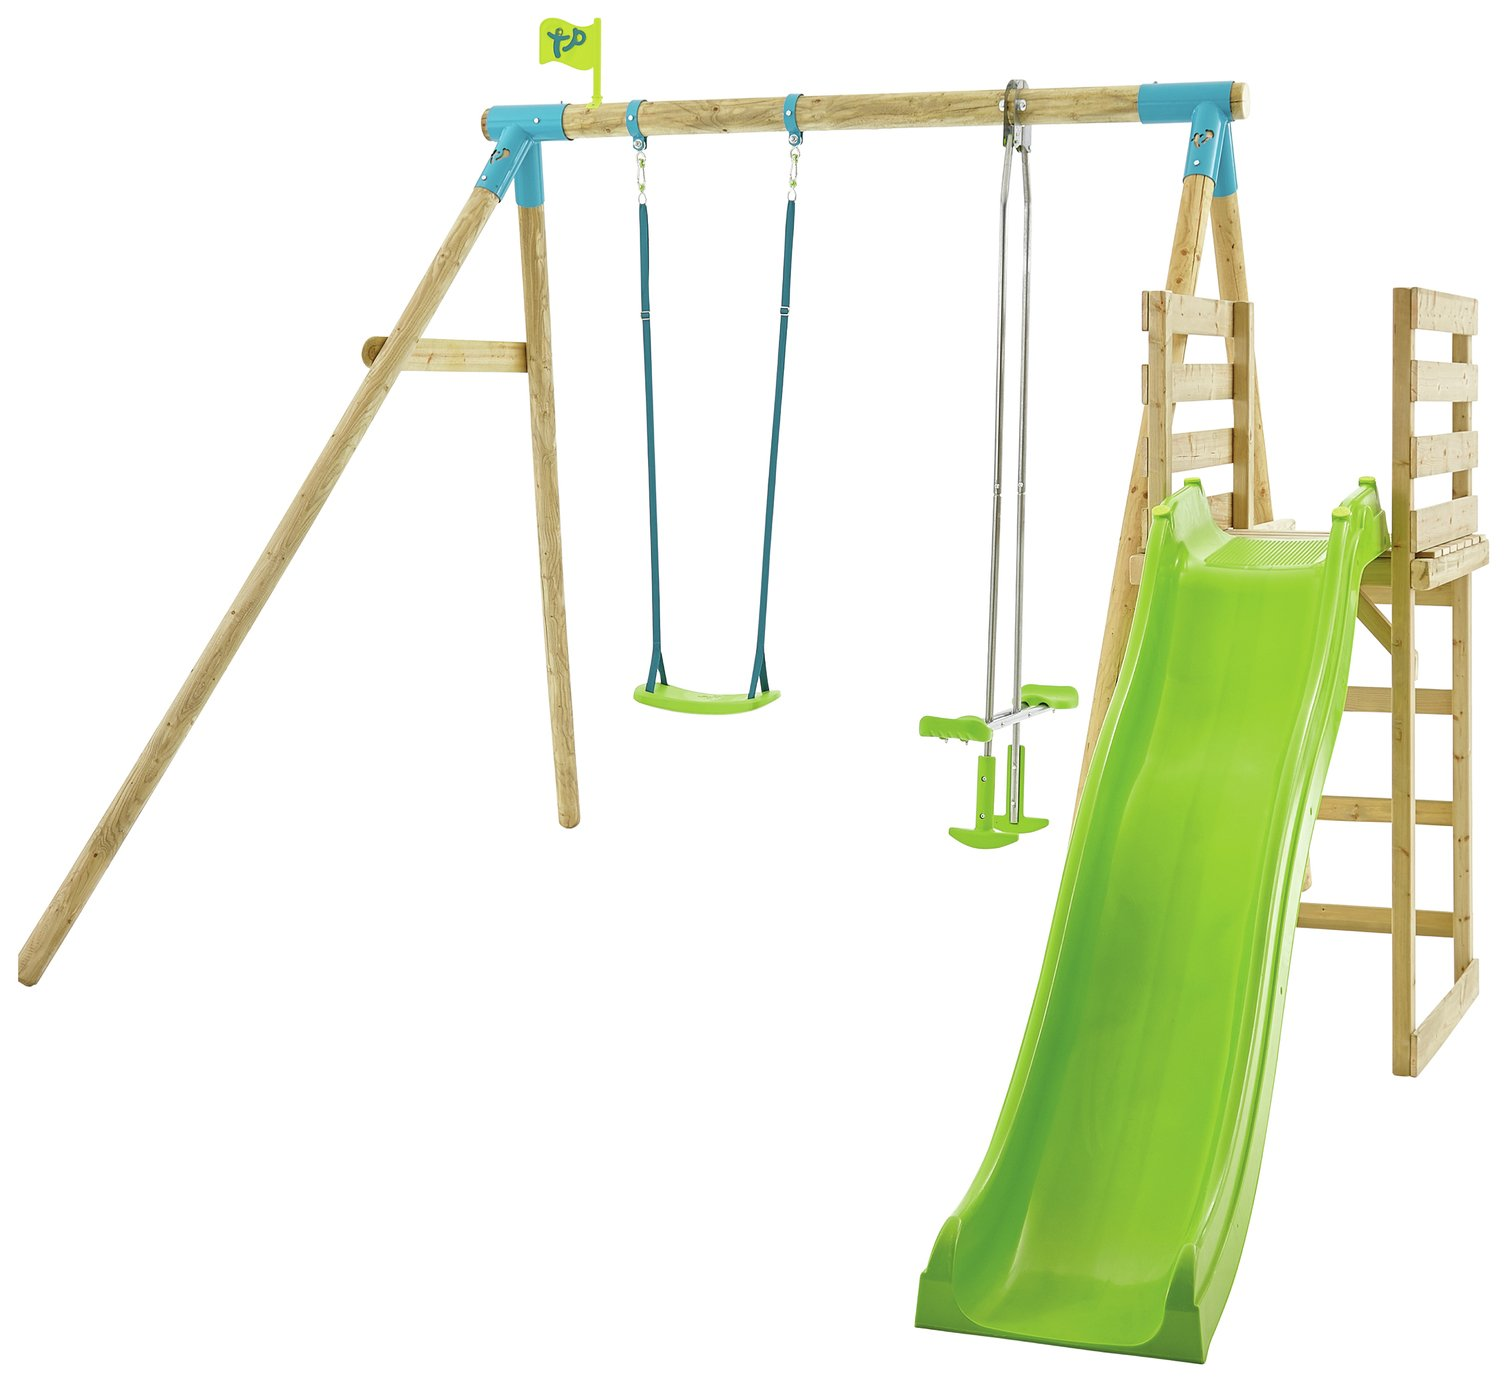 TP Kite Wood Double Swing Set With 8ft Wavy Slide